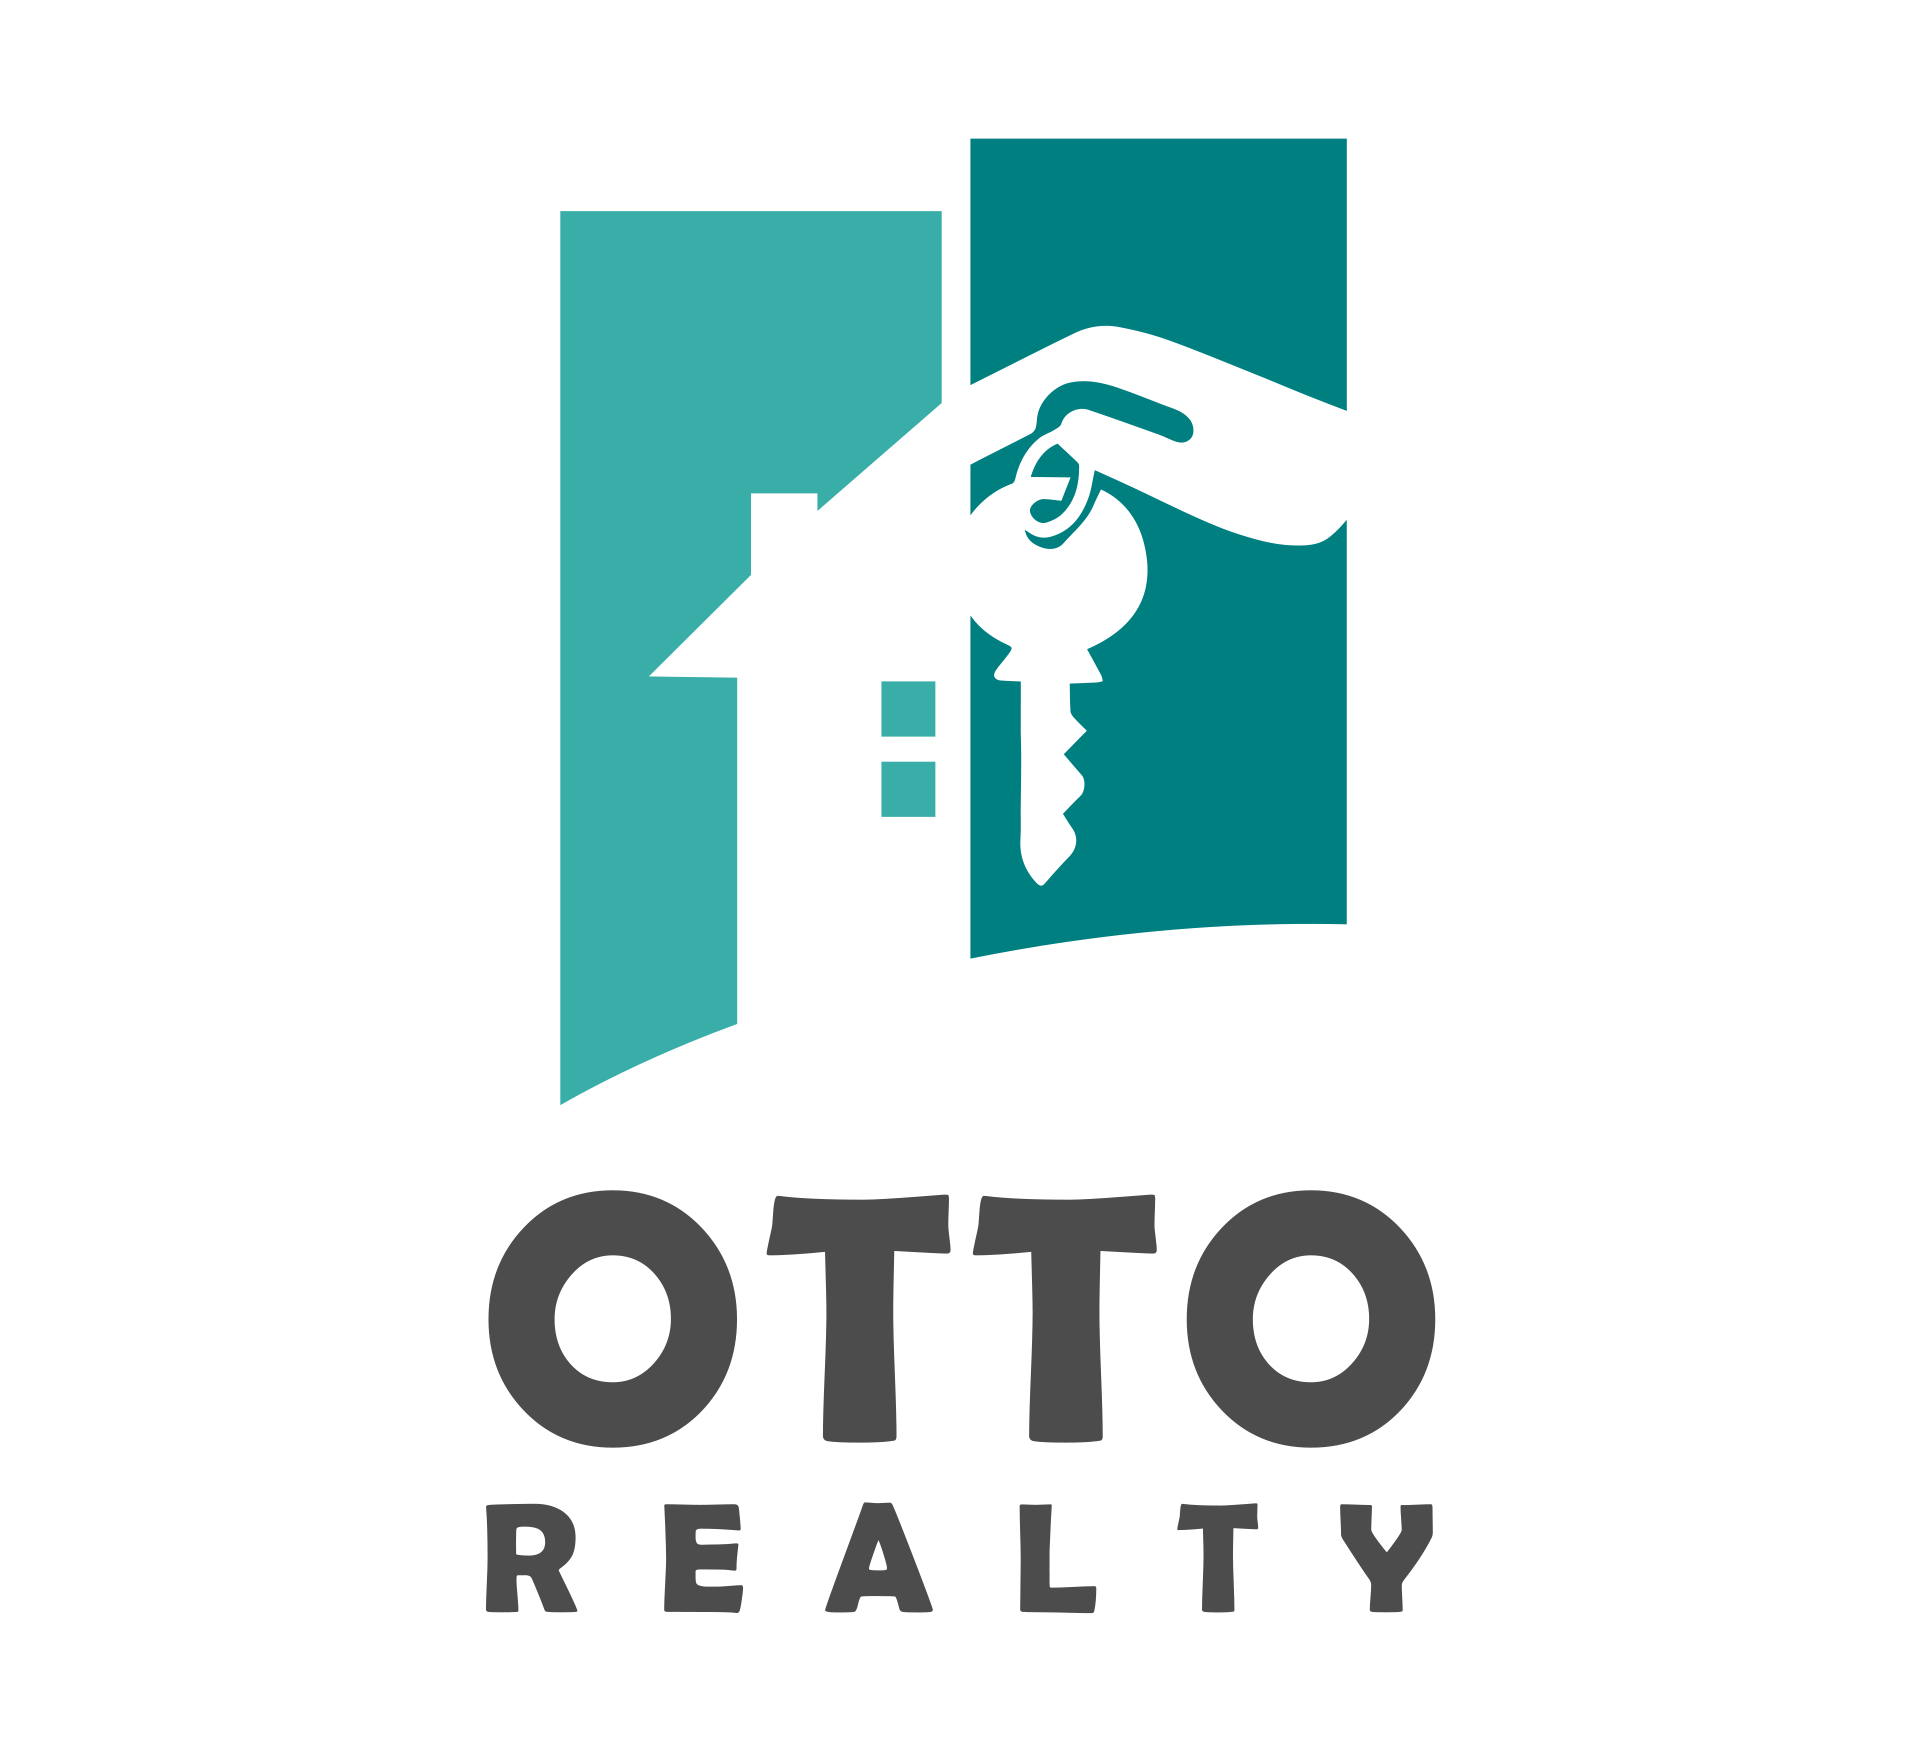 Otto Realty